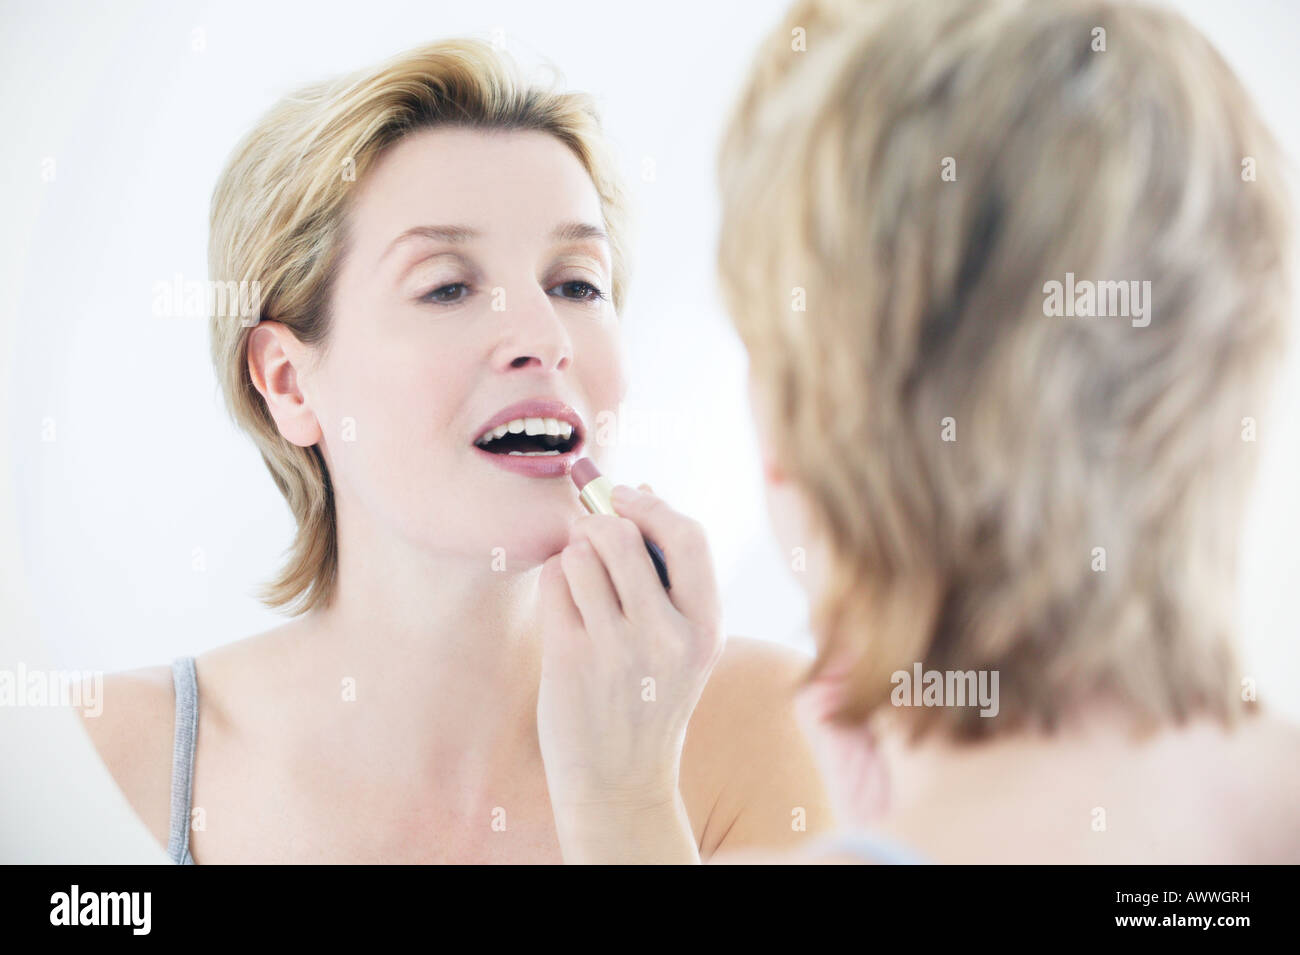 A woman applying lipstick in the mirror Stock Photo